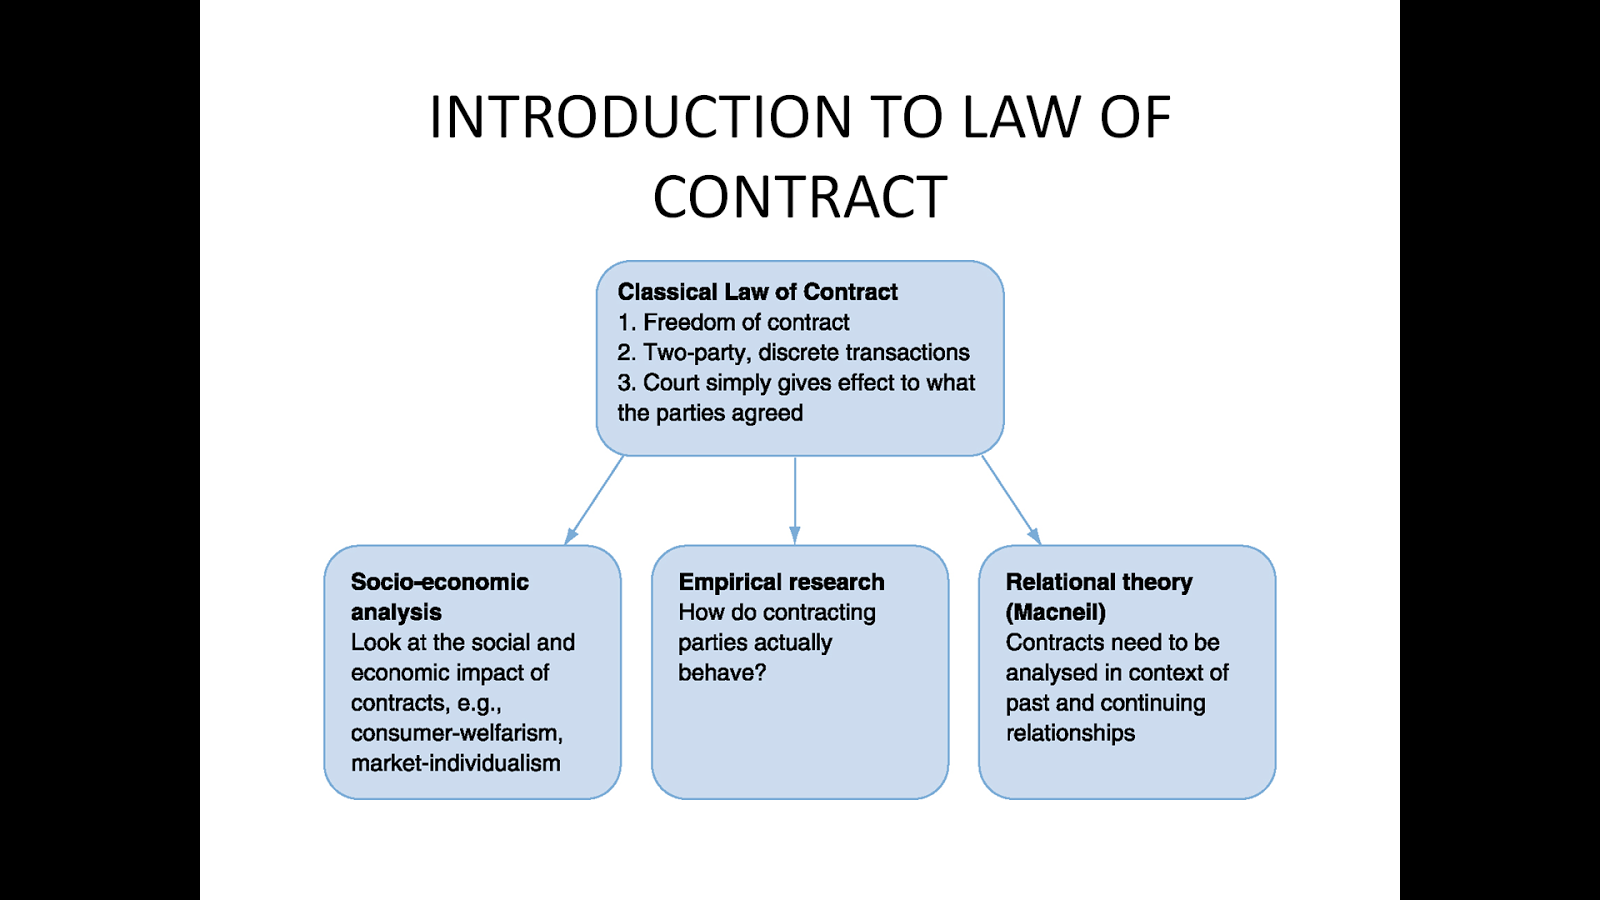 law of contract A contract is a legally binding exchange of promises or agreement between parties that the law will enforce contract law is based on the latin phrase pacta sunt servanda (literally, promises must be kept) breach of a contract is recognised by the law and remedies can be provided.